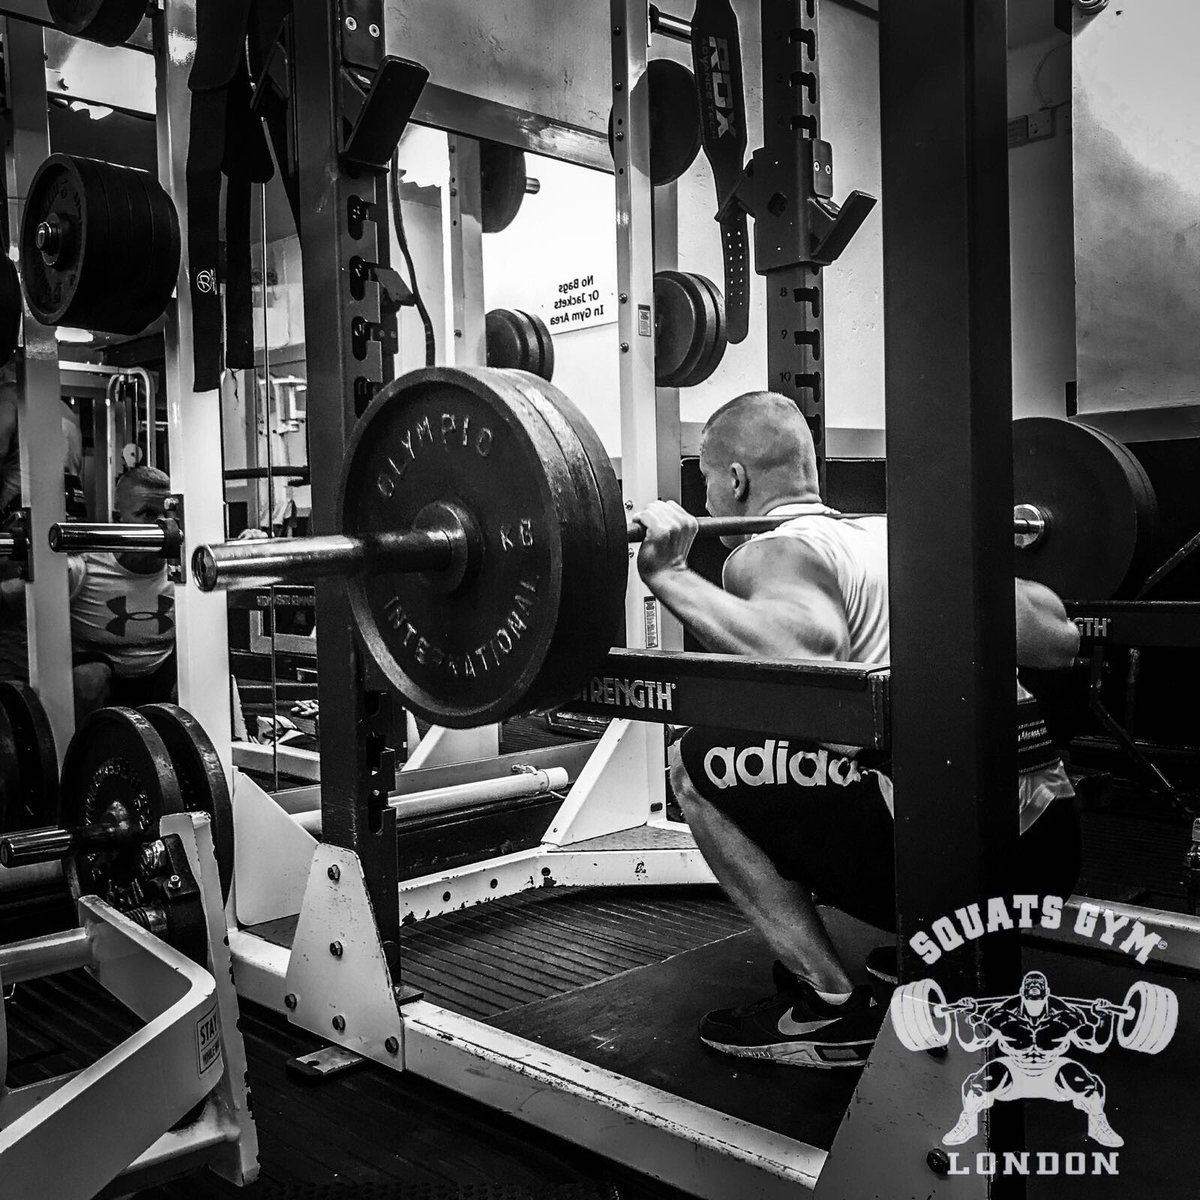 Squats Gym on Twitter: